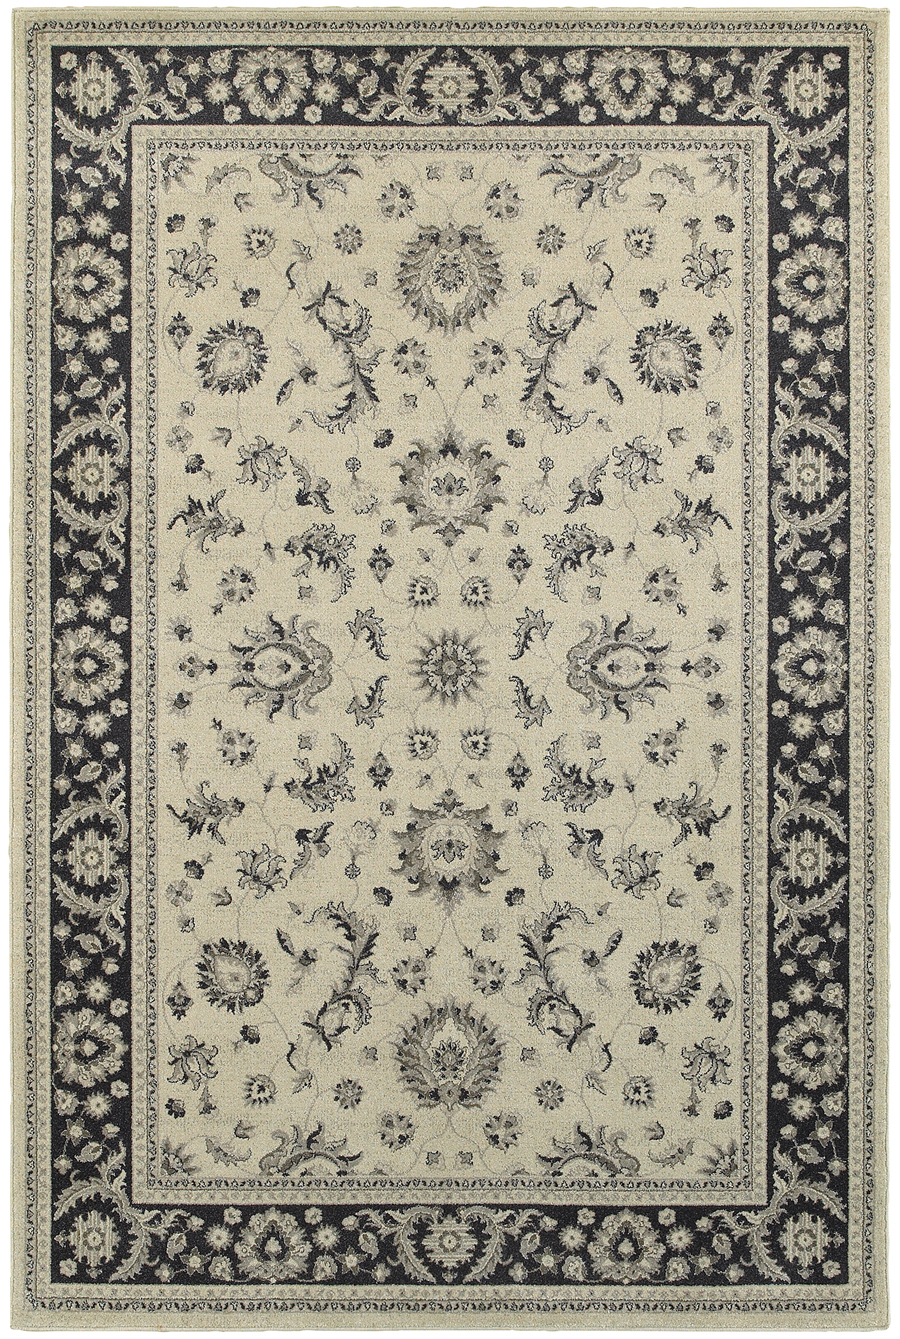 Oriental Weavers Sphinx Richmond 117W3 Rug